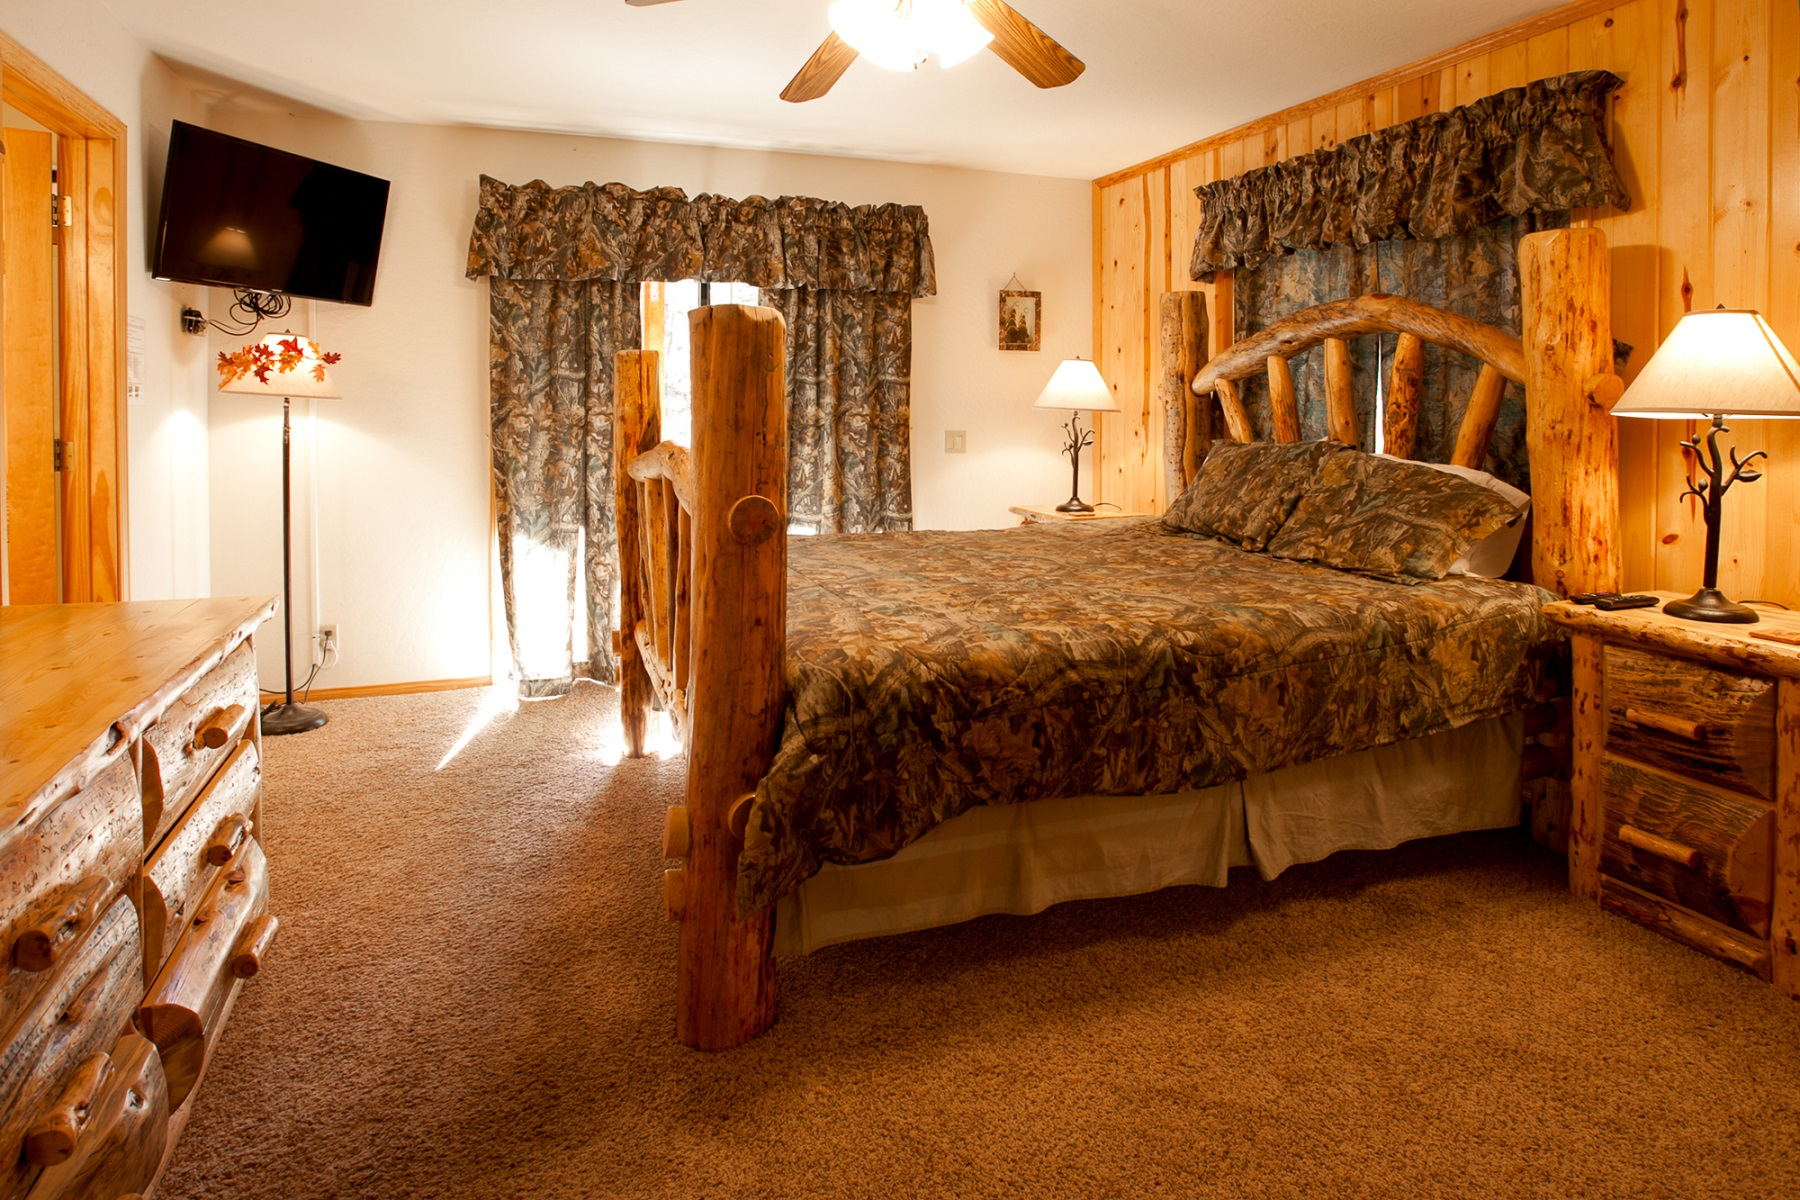 1BE08EA4-155D-0010-07B8D449F826C27C-743 Butte-20-Master Bedroom - resize 1.jpg